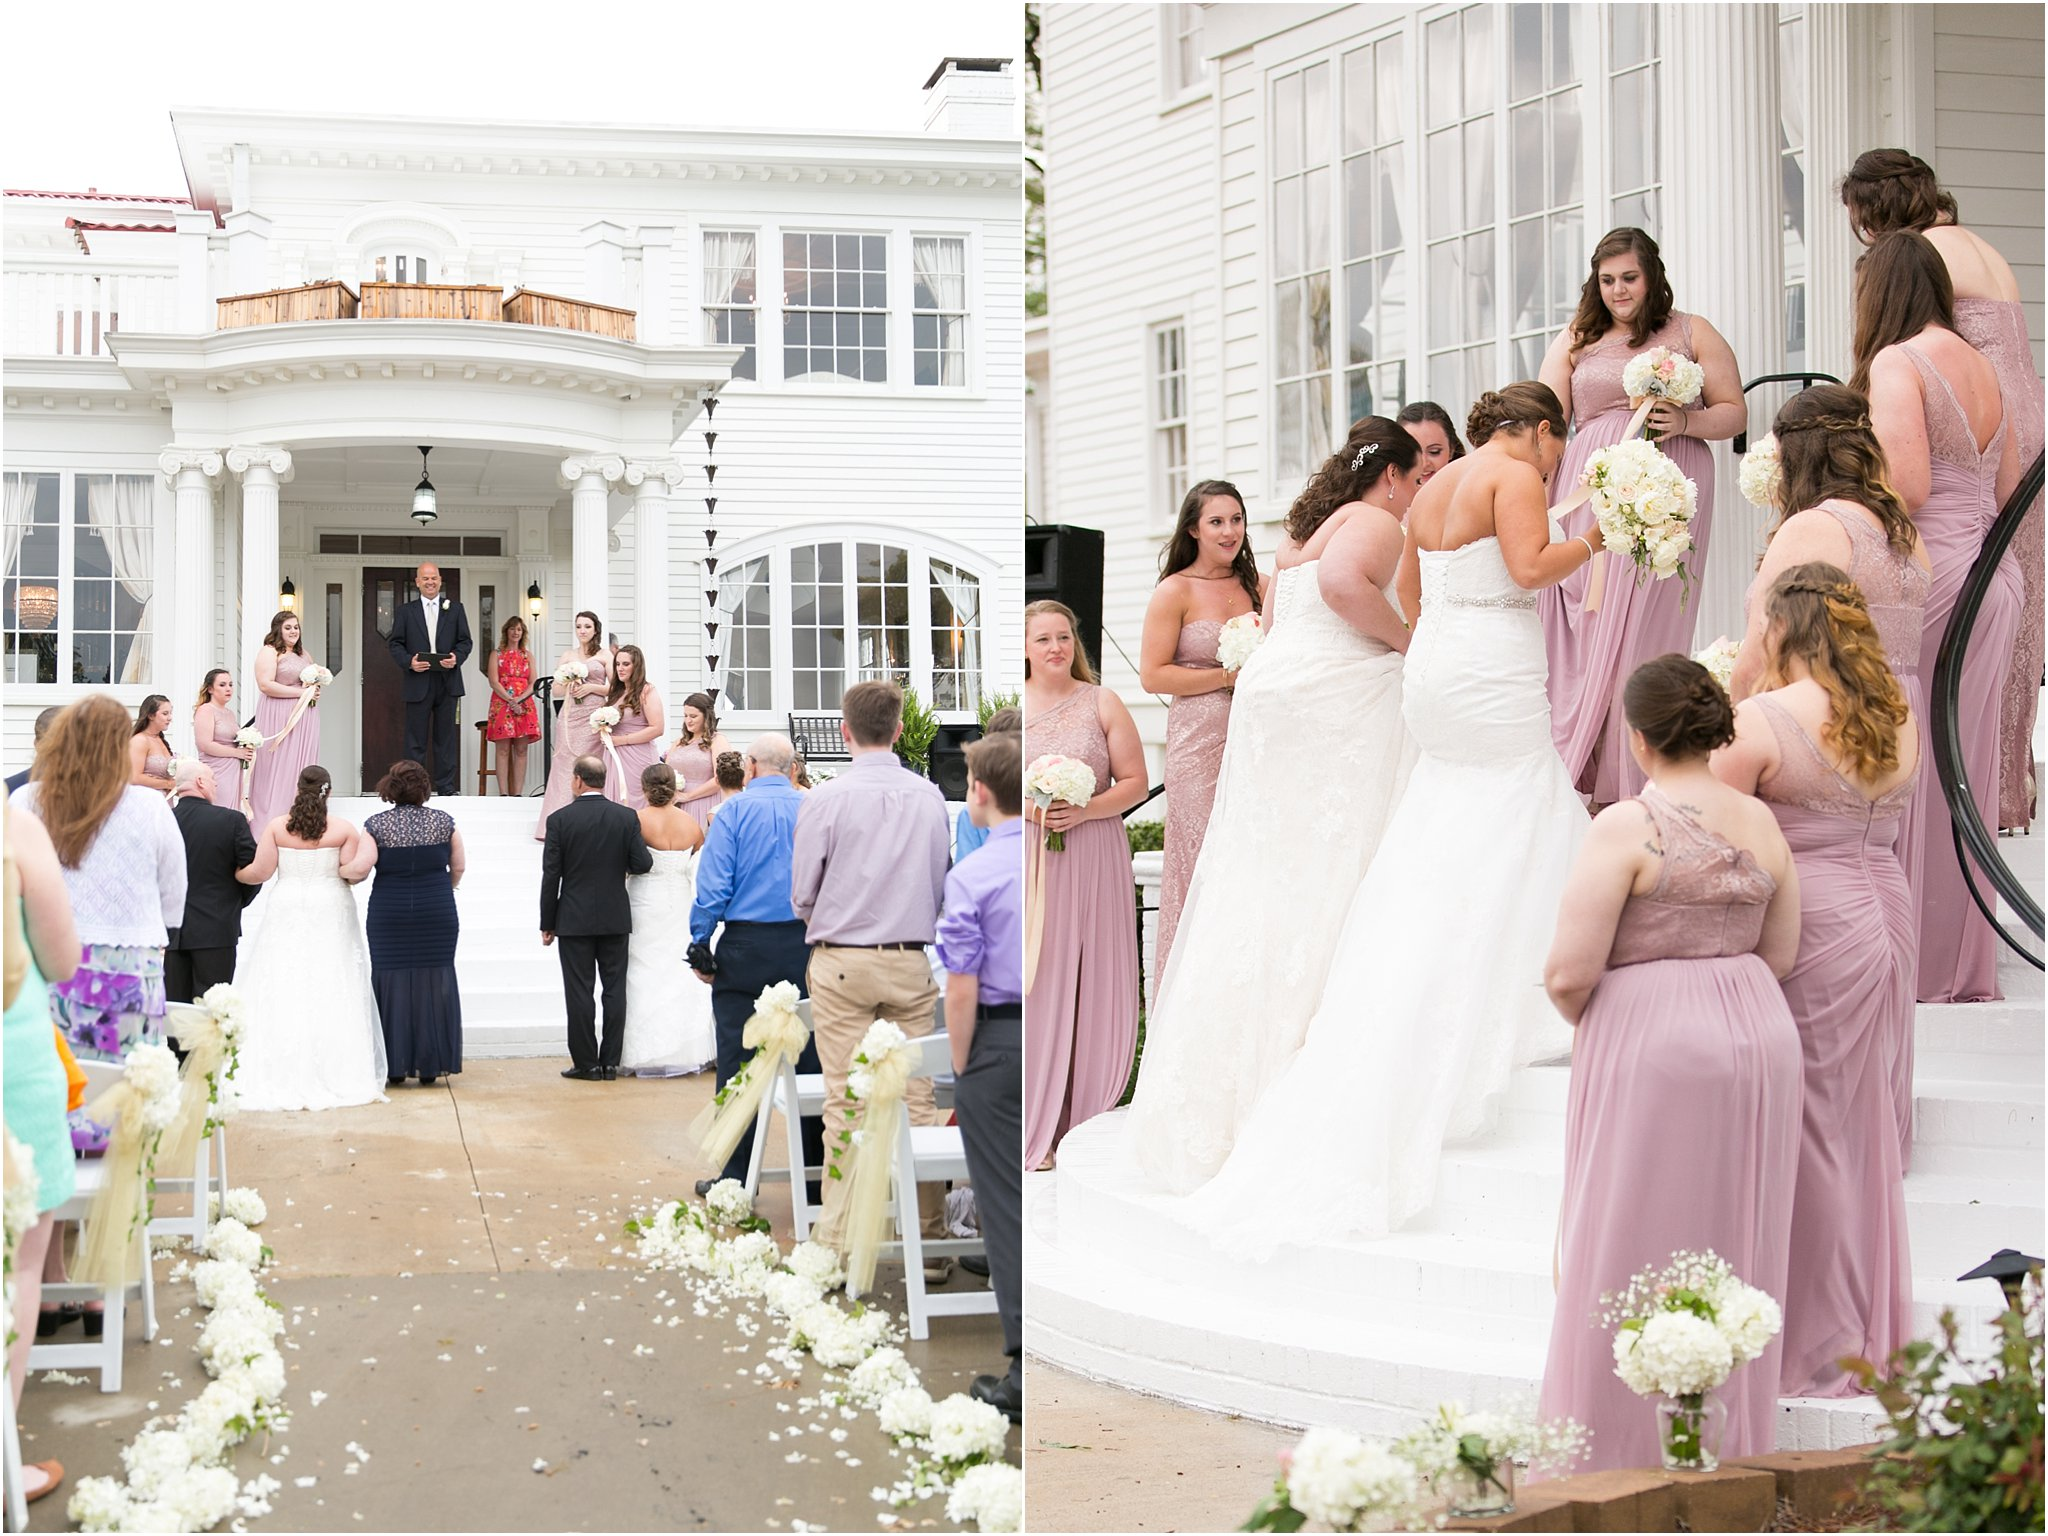 jessica_ryan_photography_wedding_suffolk_obici_house_wedding_0422